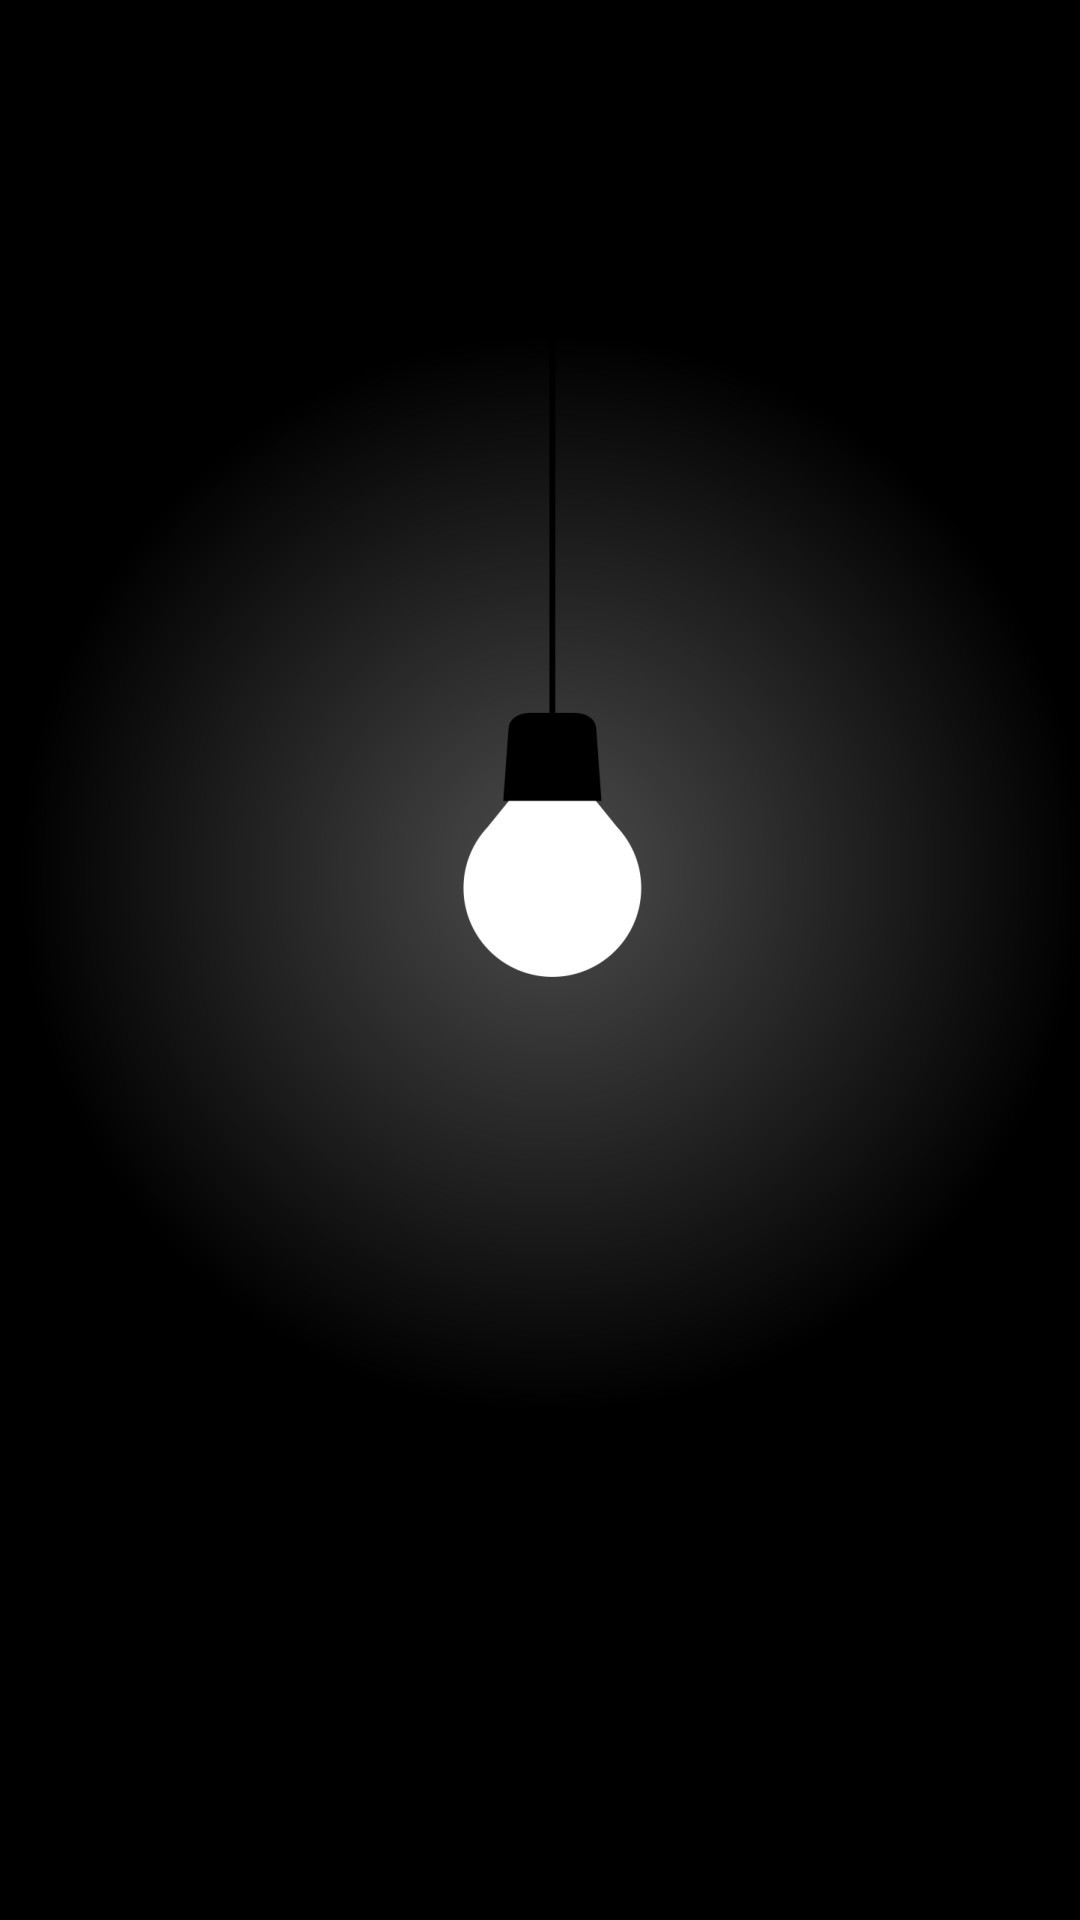 Light iPhone Wallpaper